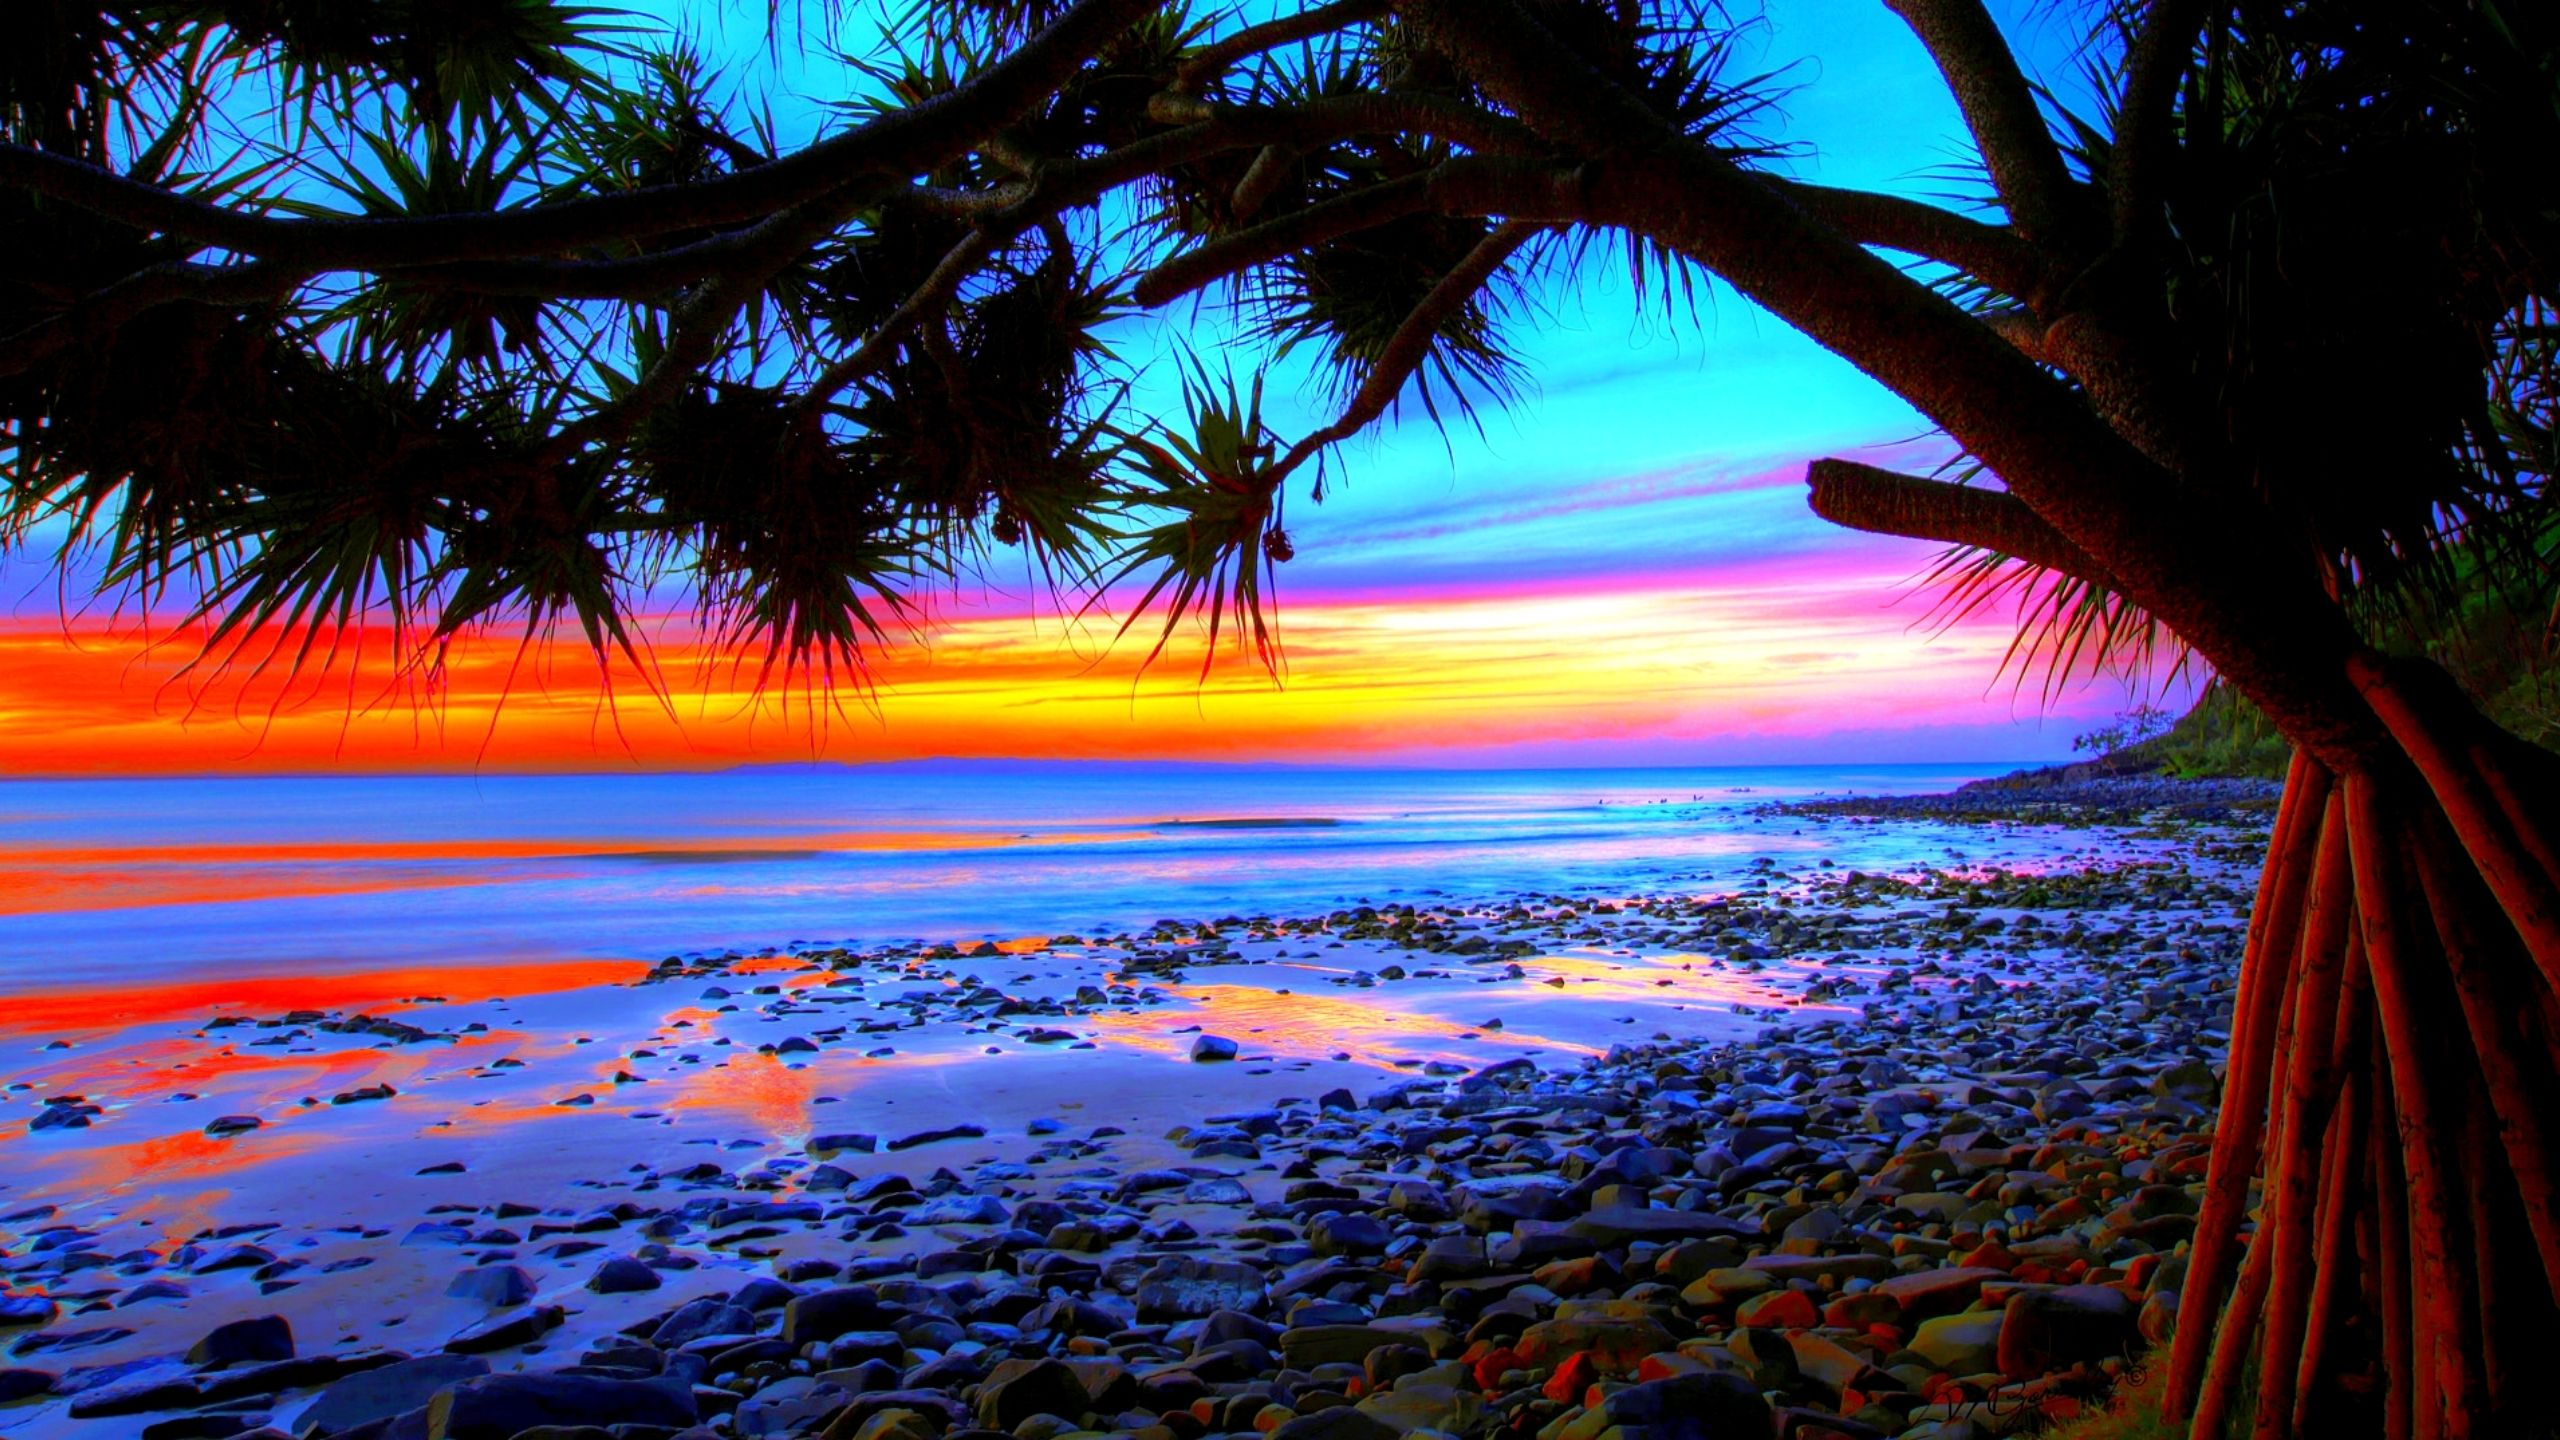 pix for colorful beach sunsets backgrounds